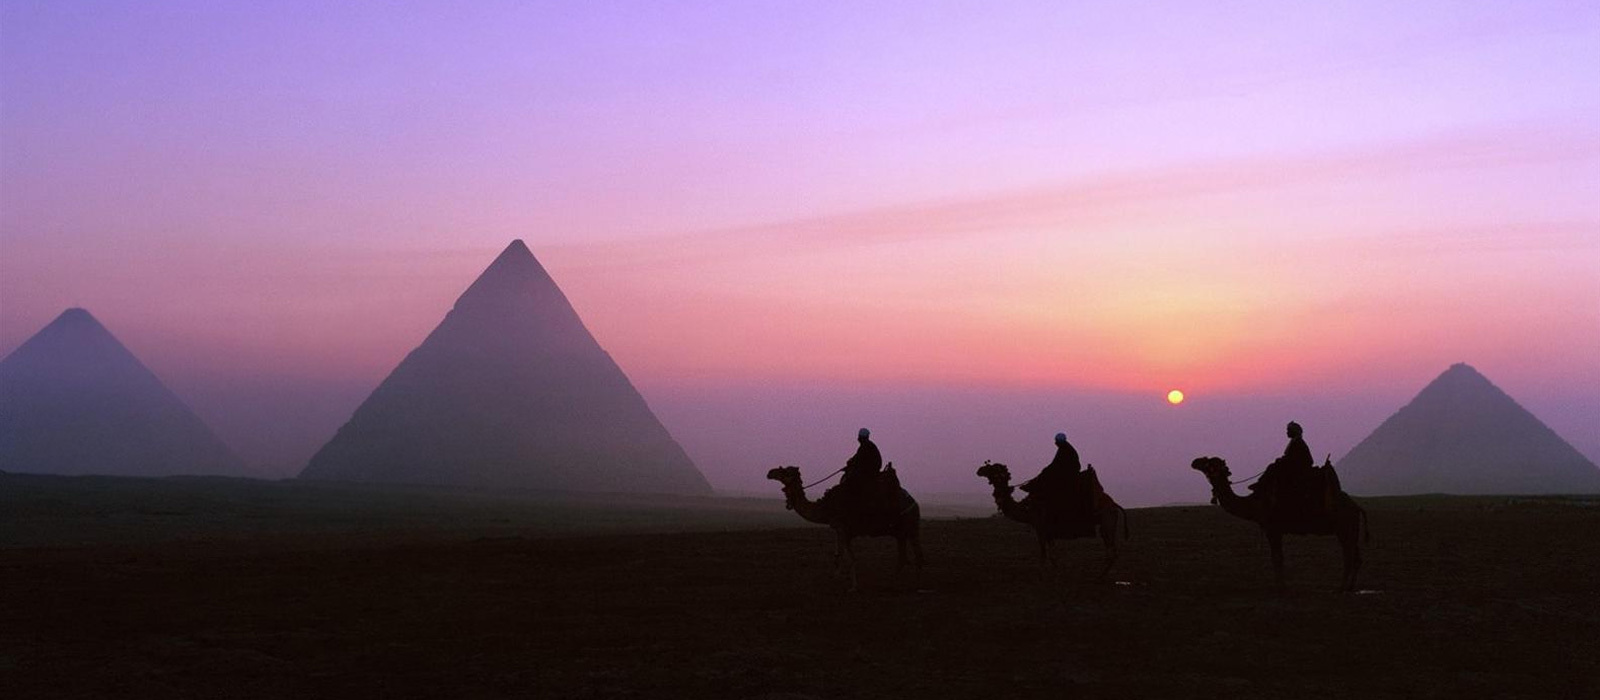 Explore & Promote 12 cities in EgyptGV